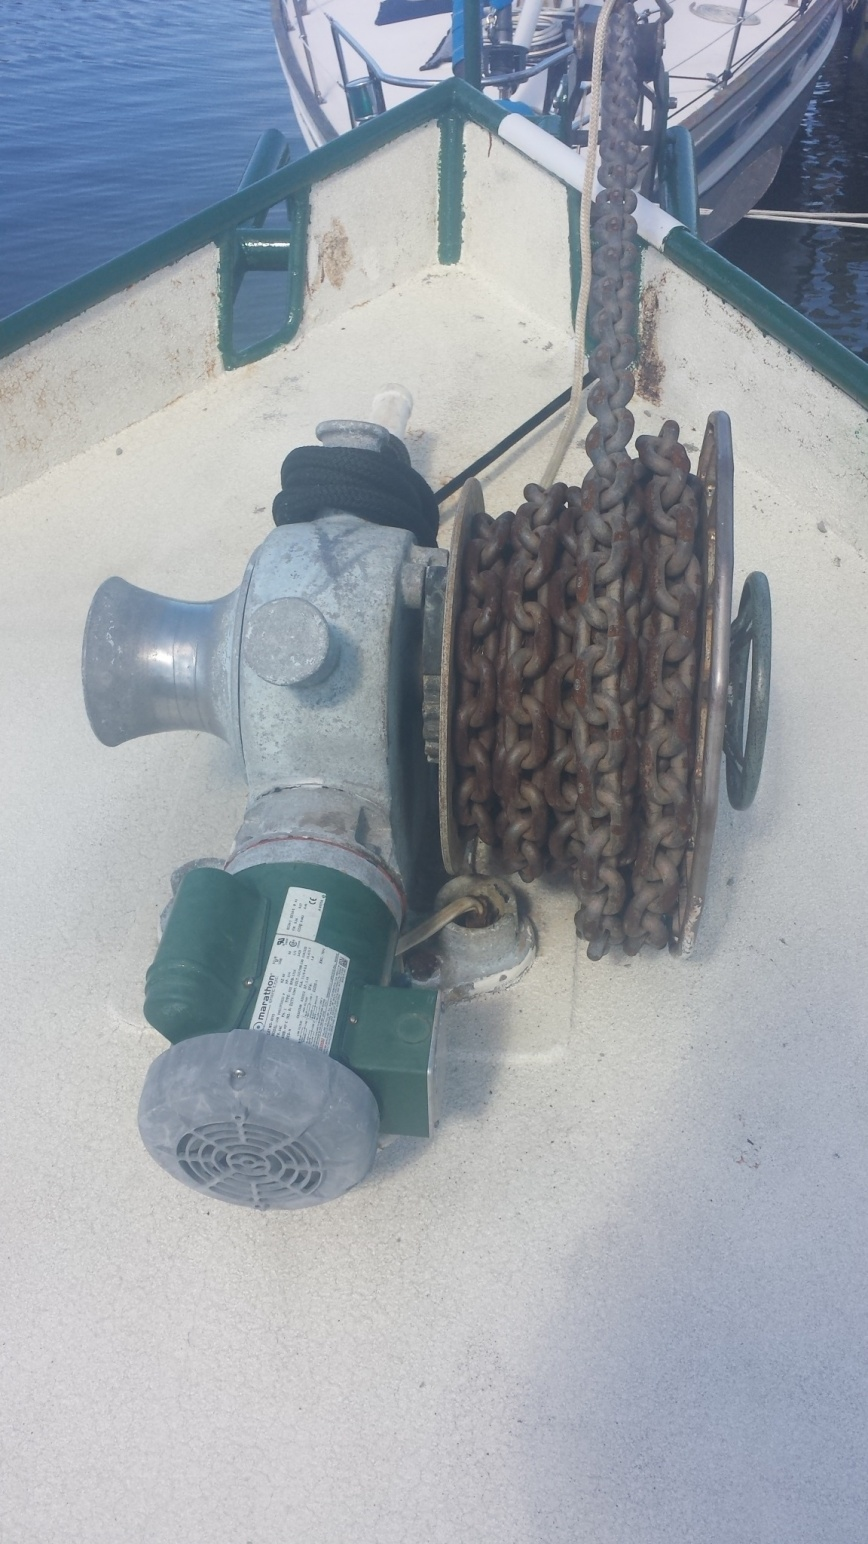 Click image for larger version  Name:windlass with chain(1).jpg Views:152 Size:403.7 KB ID:175747